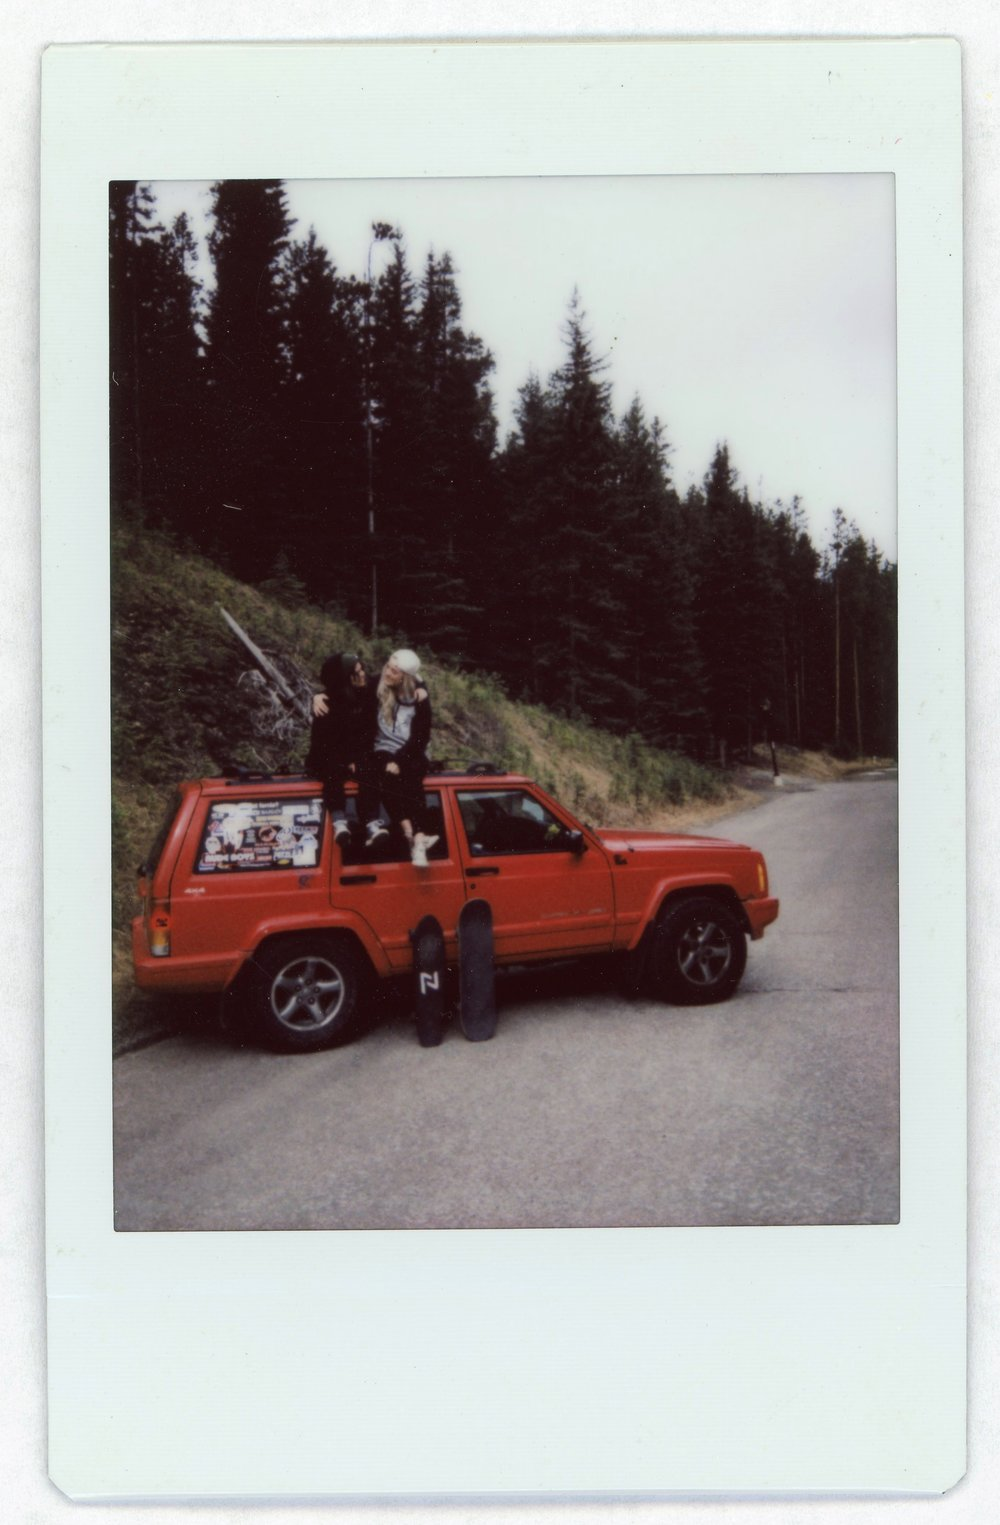 My Jeep's Name is Saul, and We're Going to California Together | Fuji Instax Mini | Lucy Carling